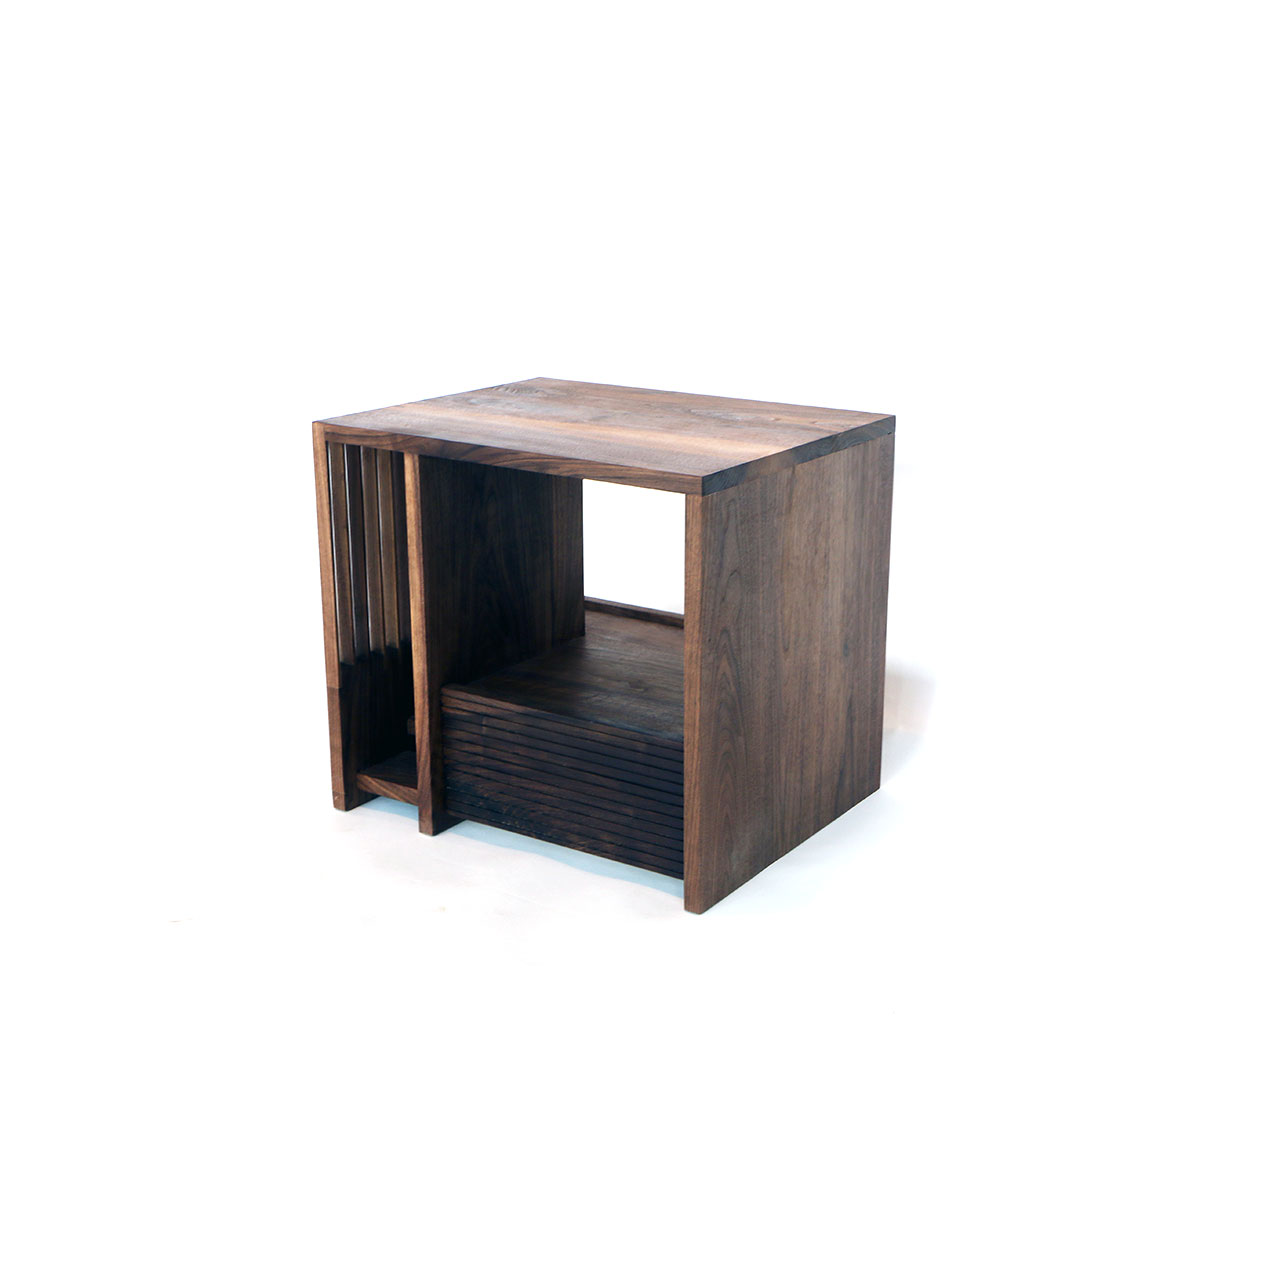 A-01/Bed table